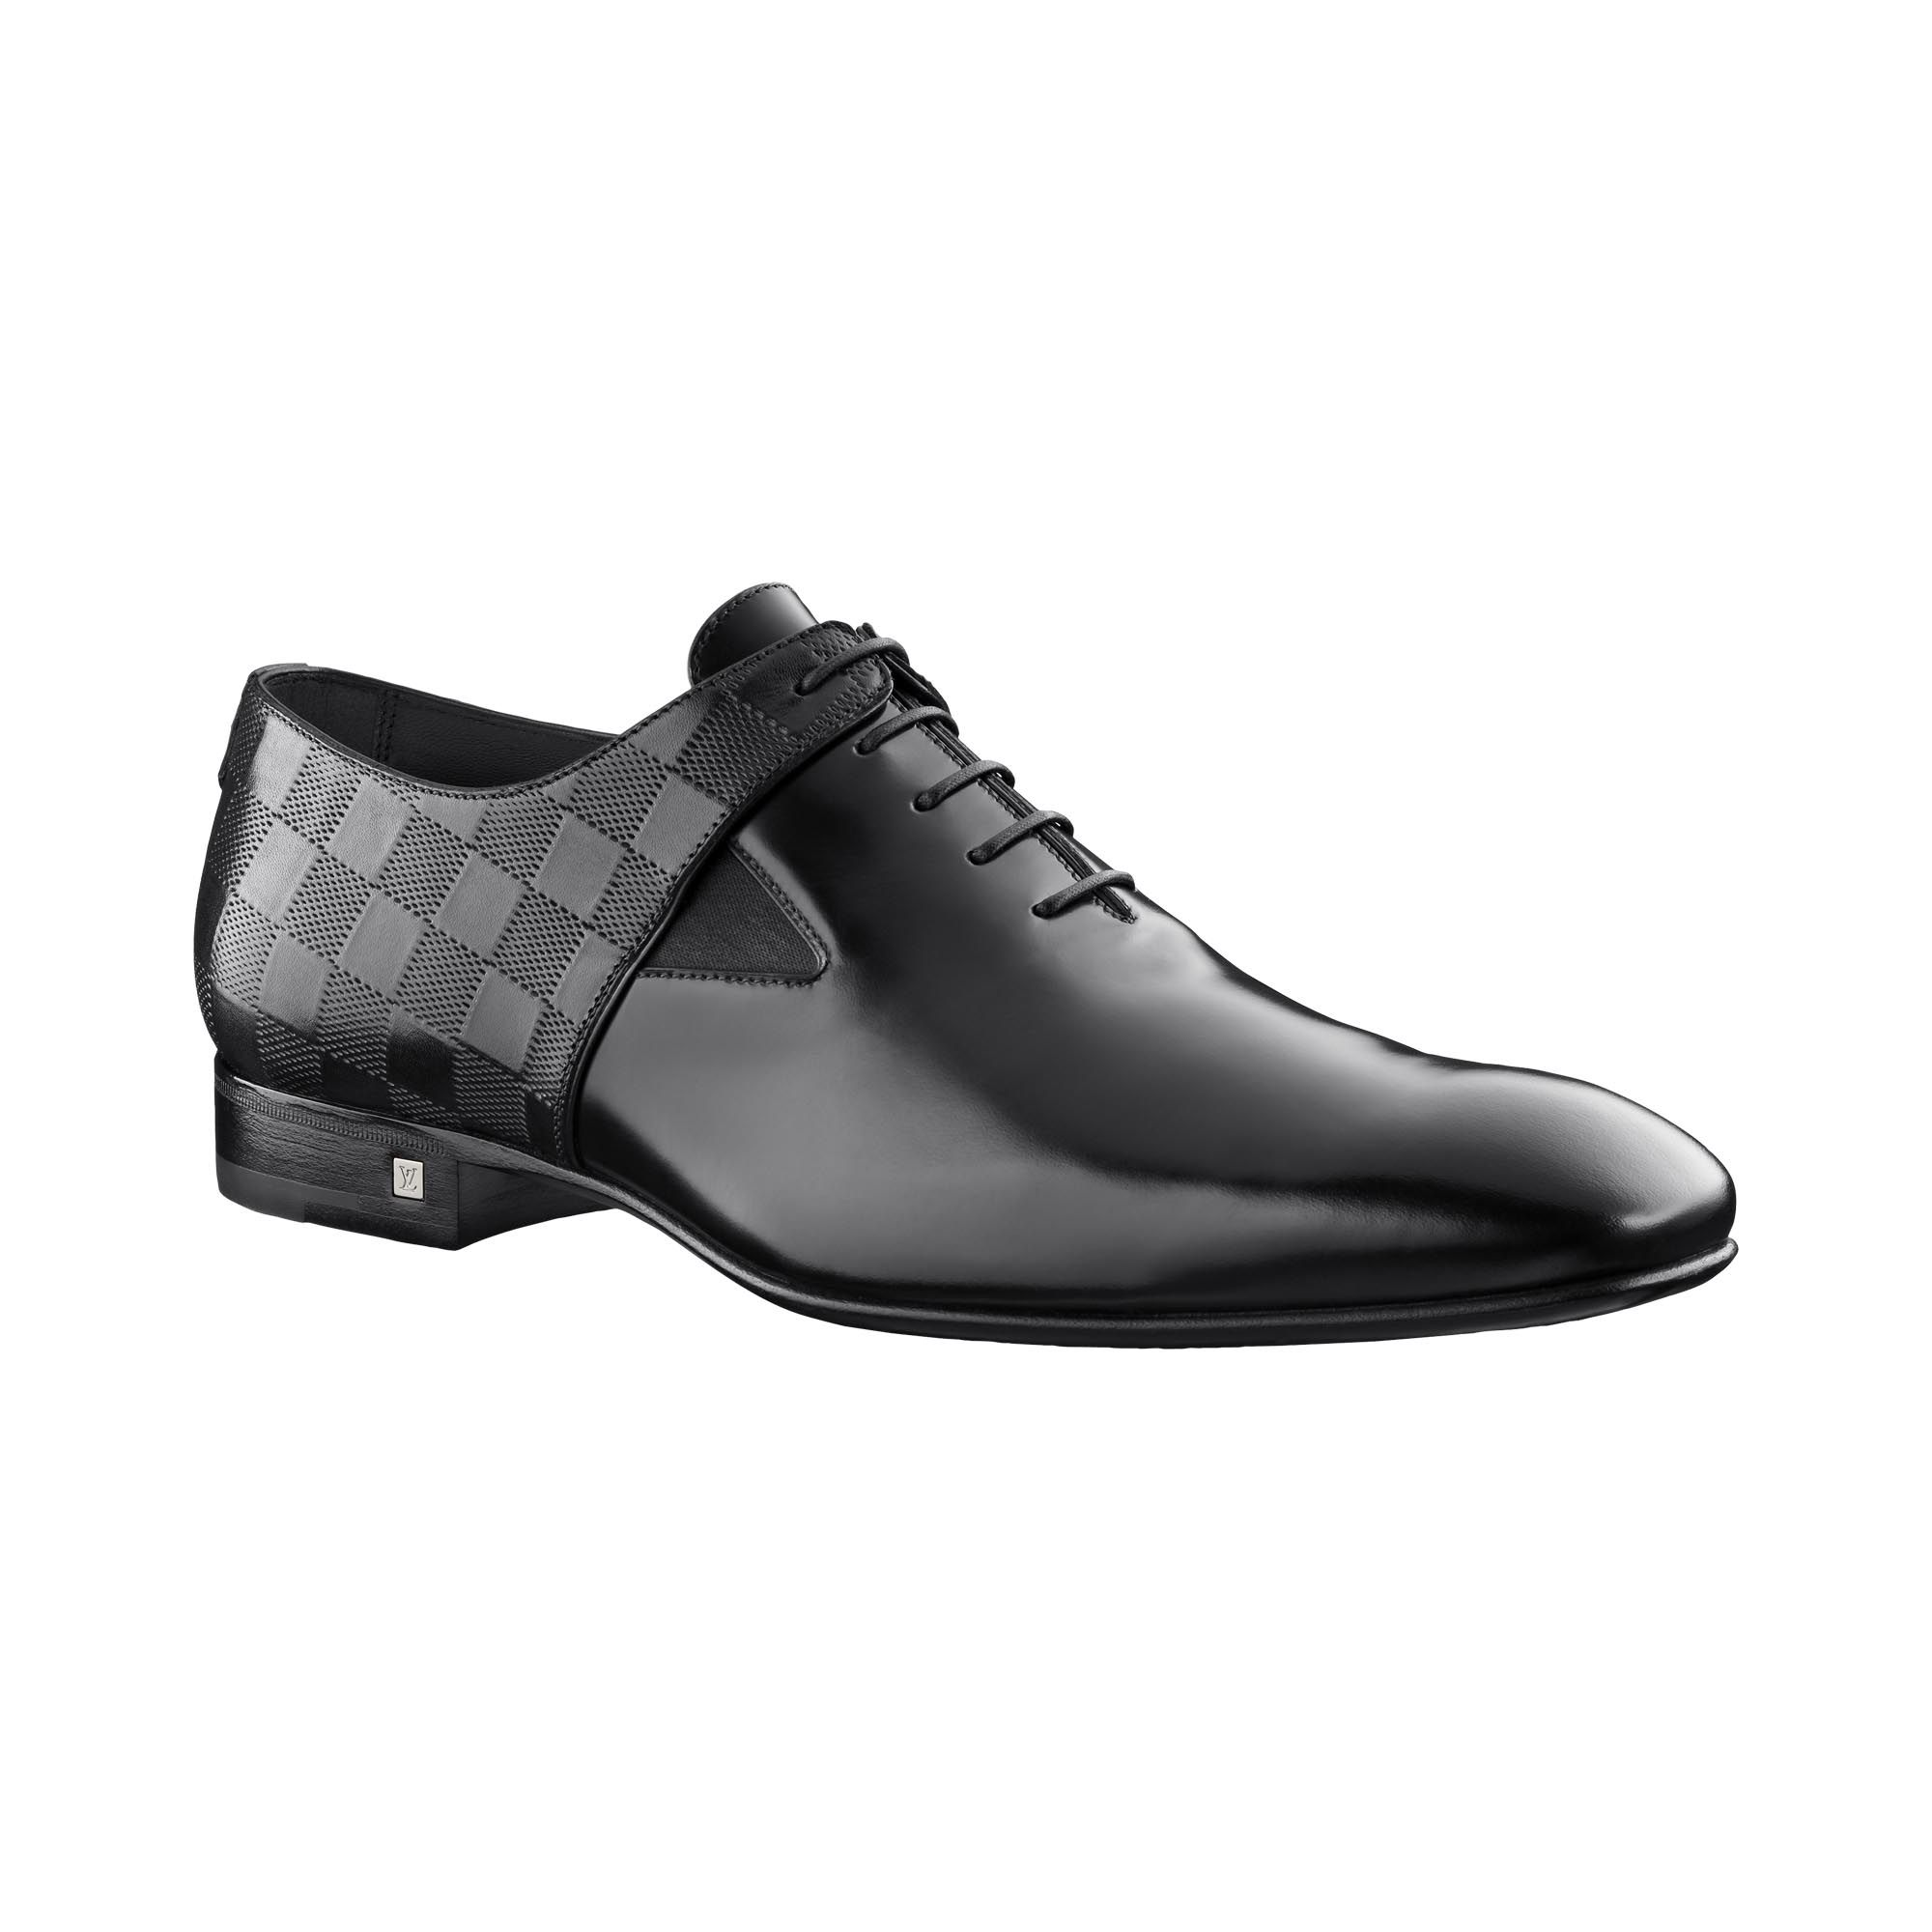 d469a591d4a Louis Vuitton | Cool Men's Shoes | shoe ideas | Tuxedo shoes, Shoes ...